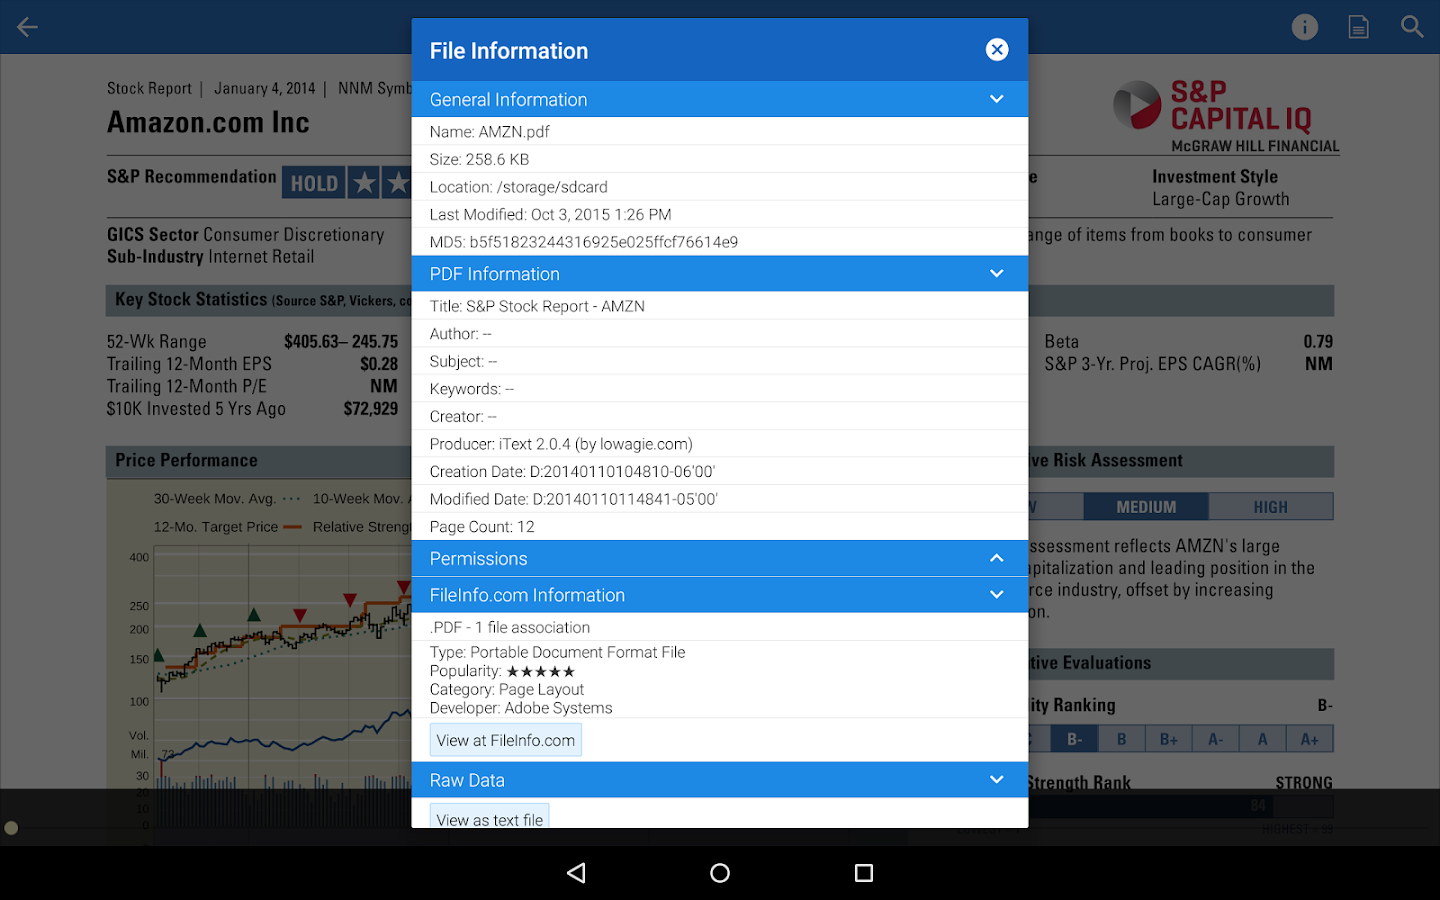 pdf viewer app for android